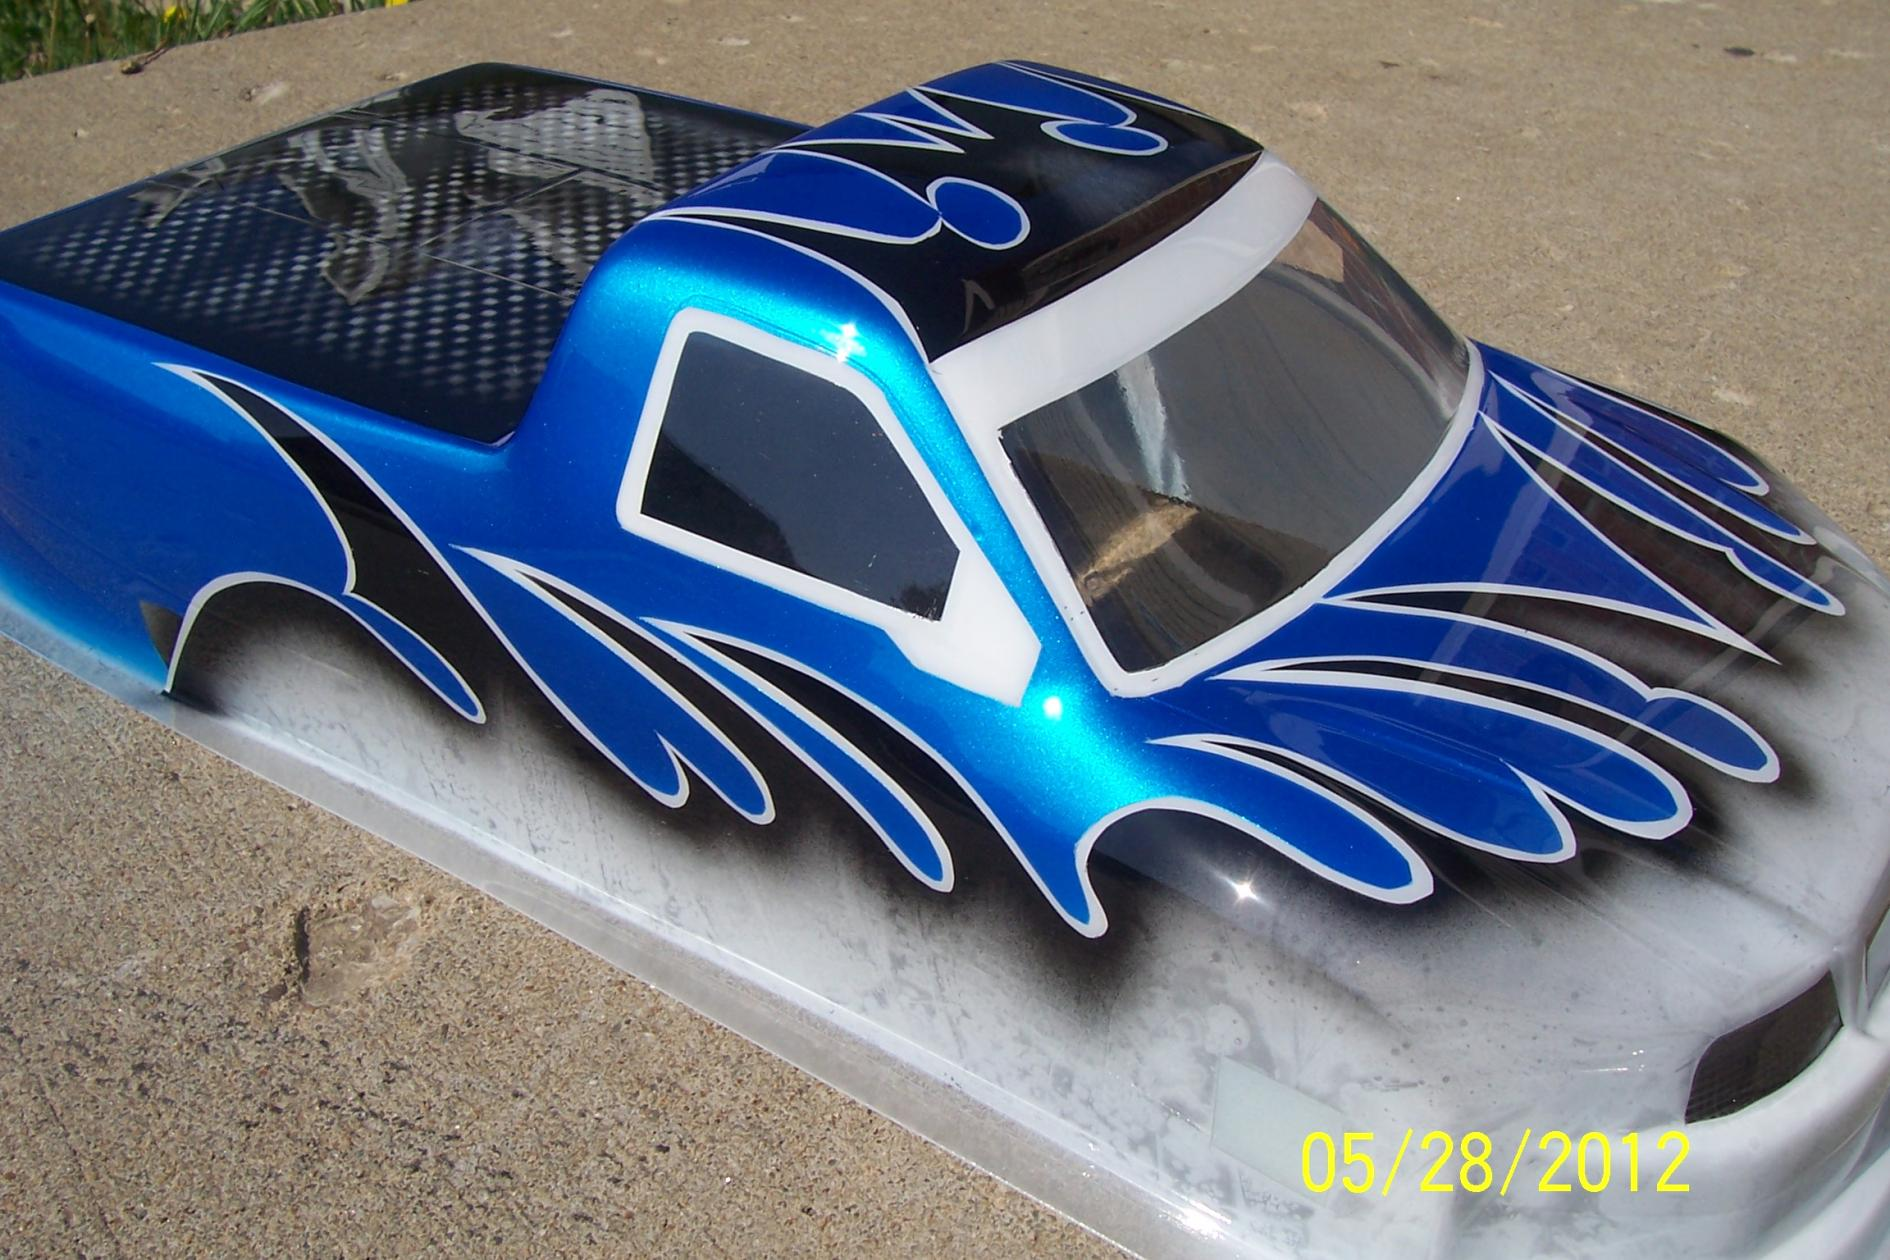 Topeka Onroad Racing Page 513 R C Tech Forums Ideas And Designs